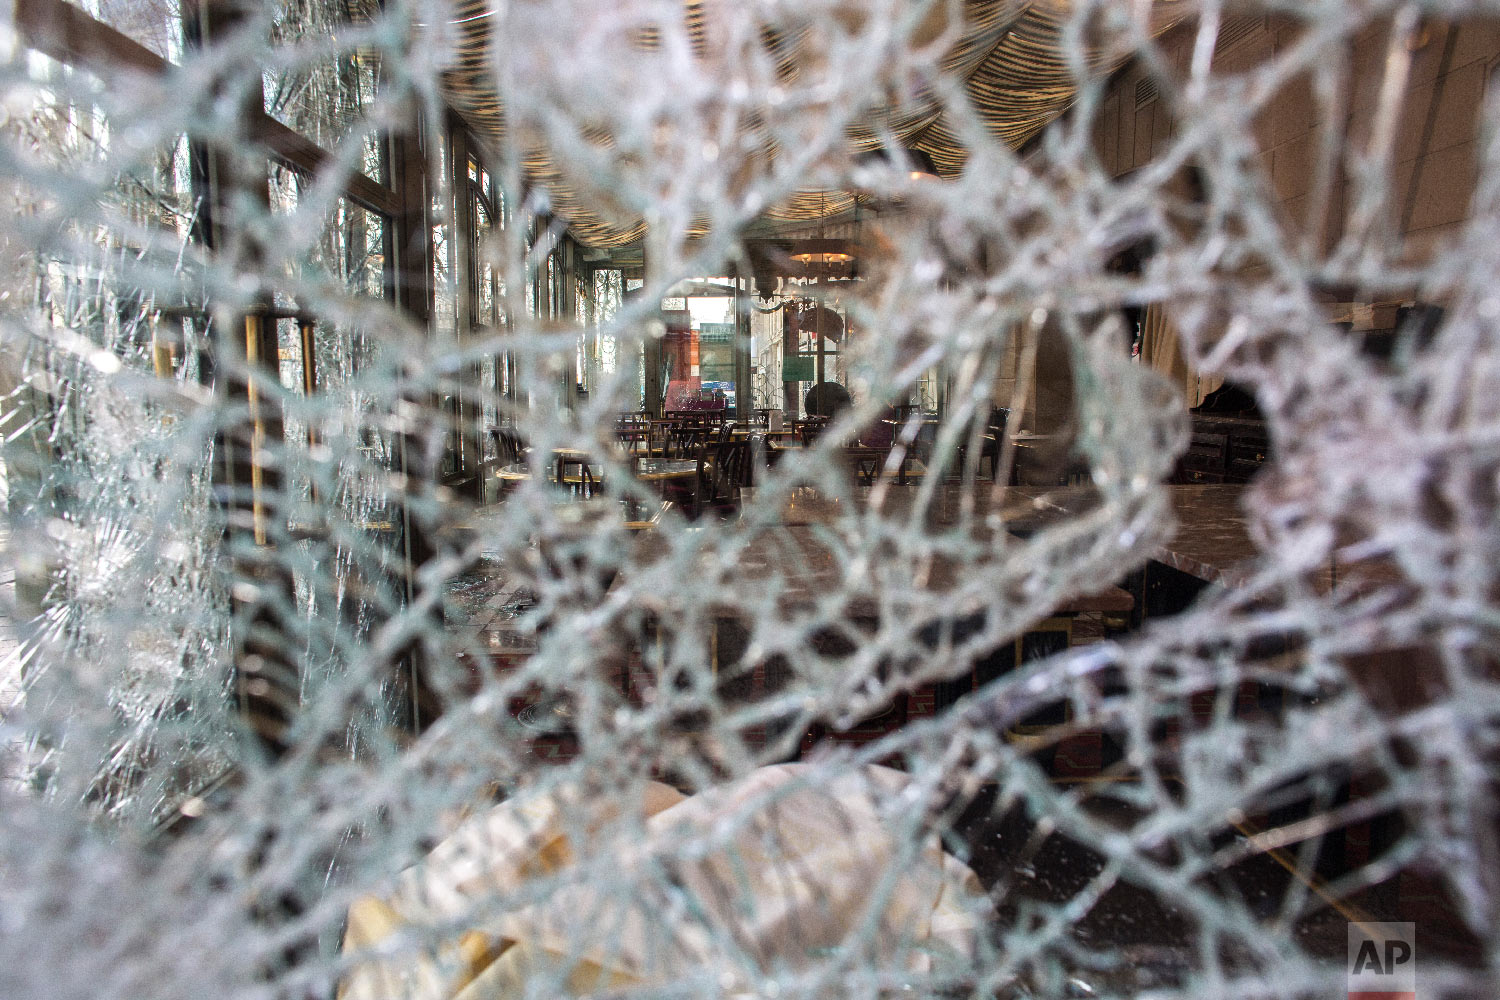 The inside view of the famed tea salon Laduree pictured through smashed windows the day after it was vandalized during the 18th straight weekend of demonstrations by the yellow vests, in Paris, March 17, 2019. (AP Photo/Rafael Yaghobzadeh)